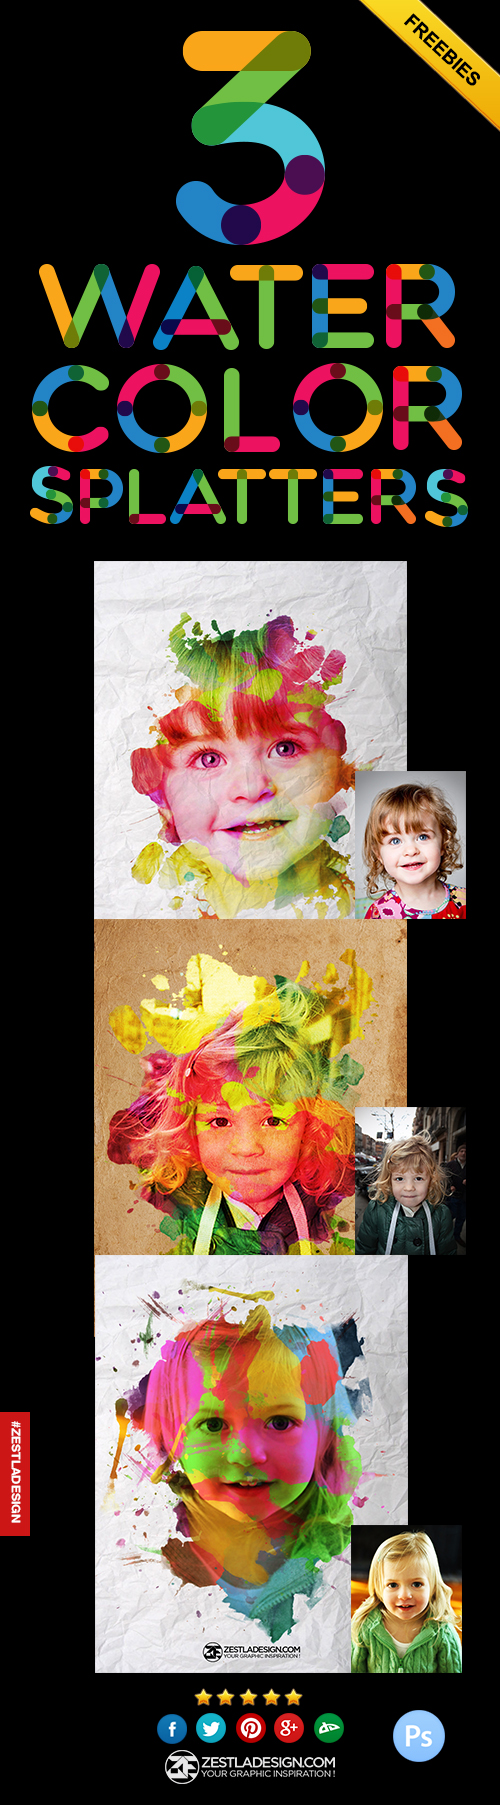 watercolor-splatters-image-review